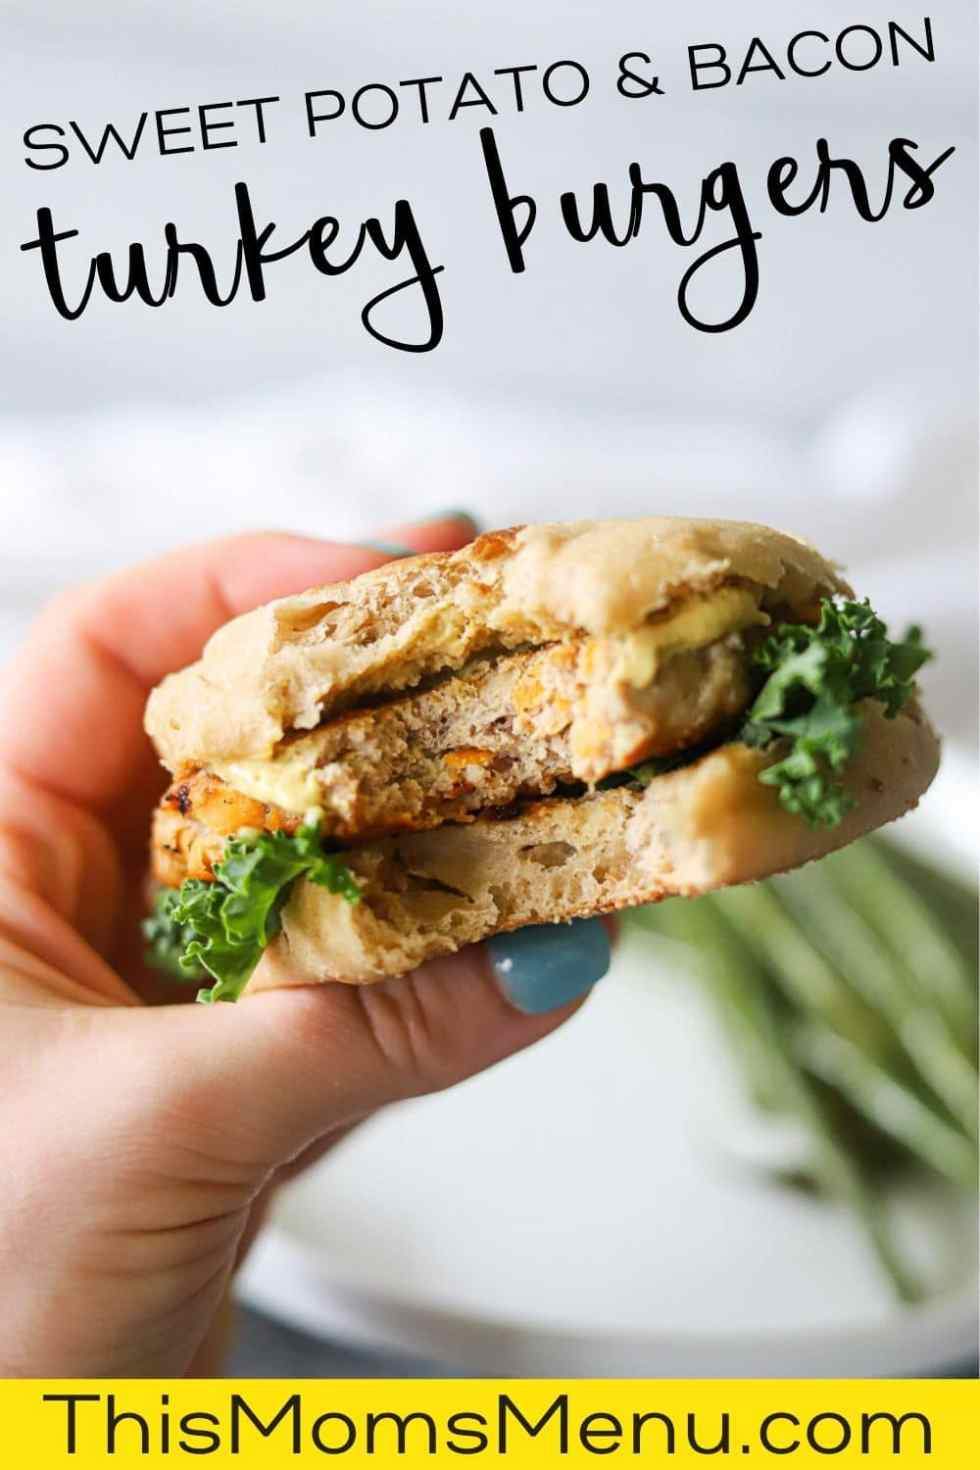 a single turkey burger on on english muffin with dijon mustard and lettuce, bing held out after one bite has been taken with descriprive text overlay.